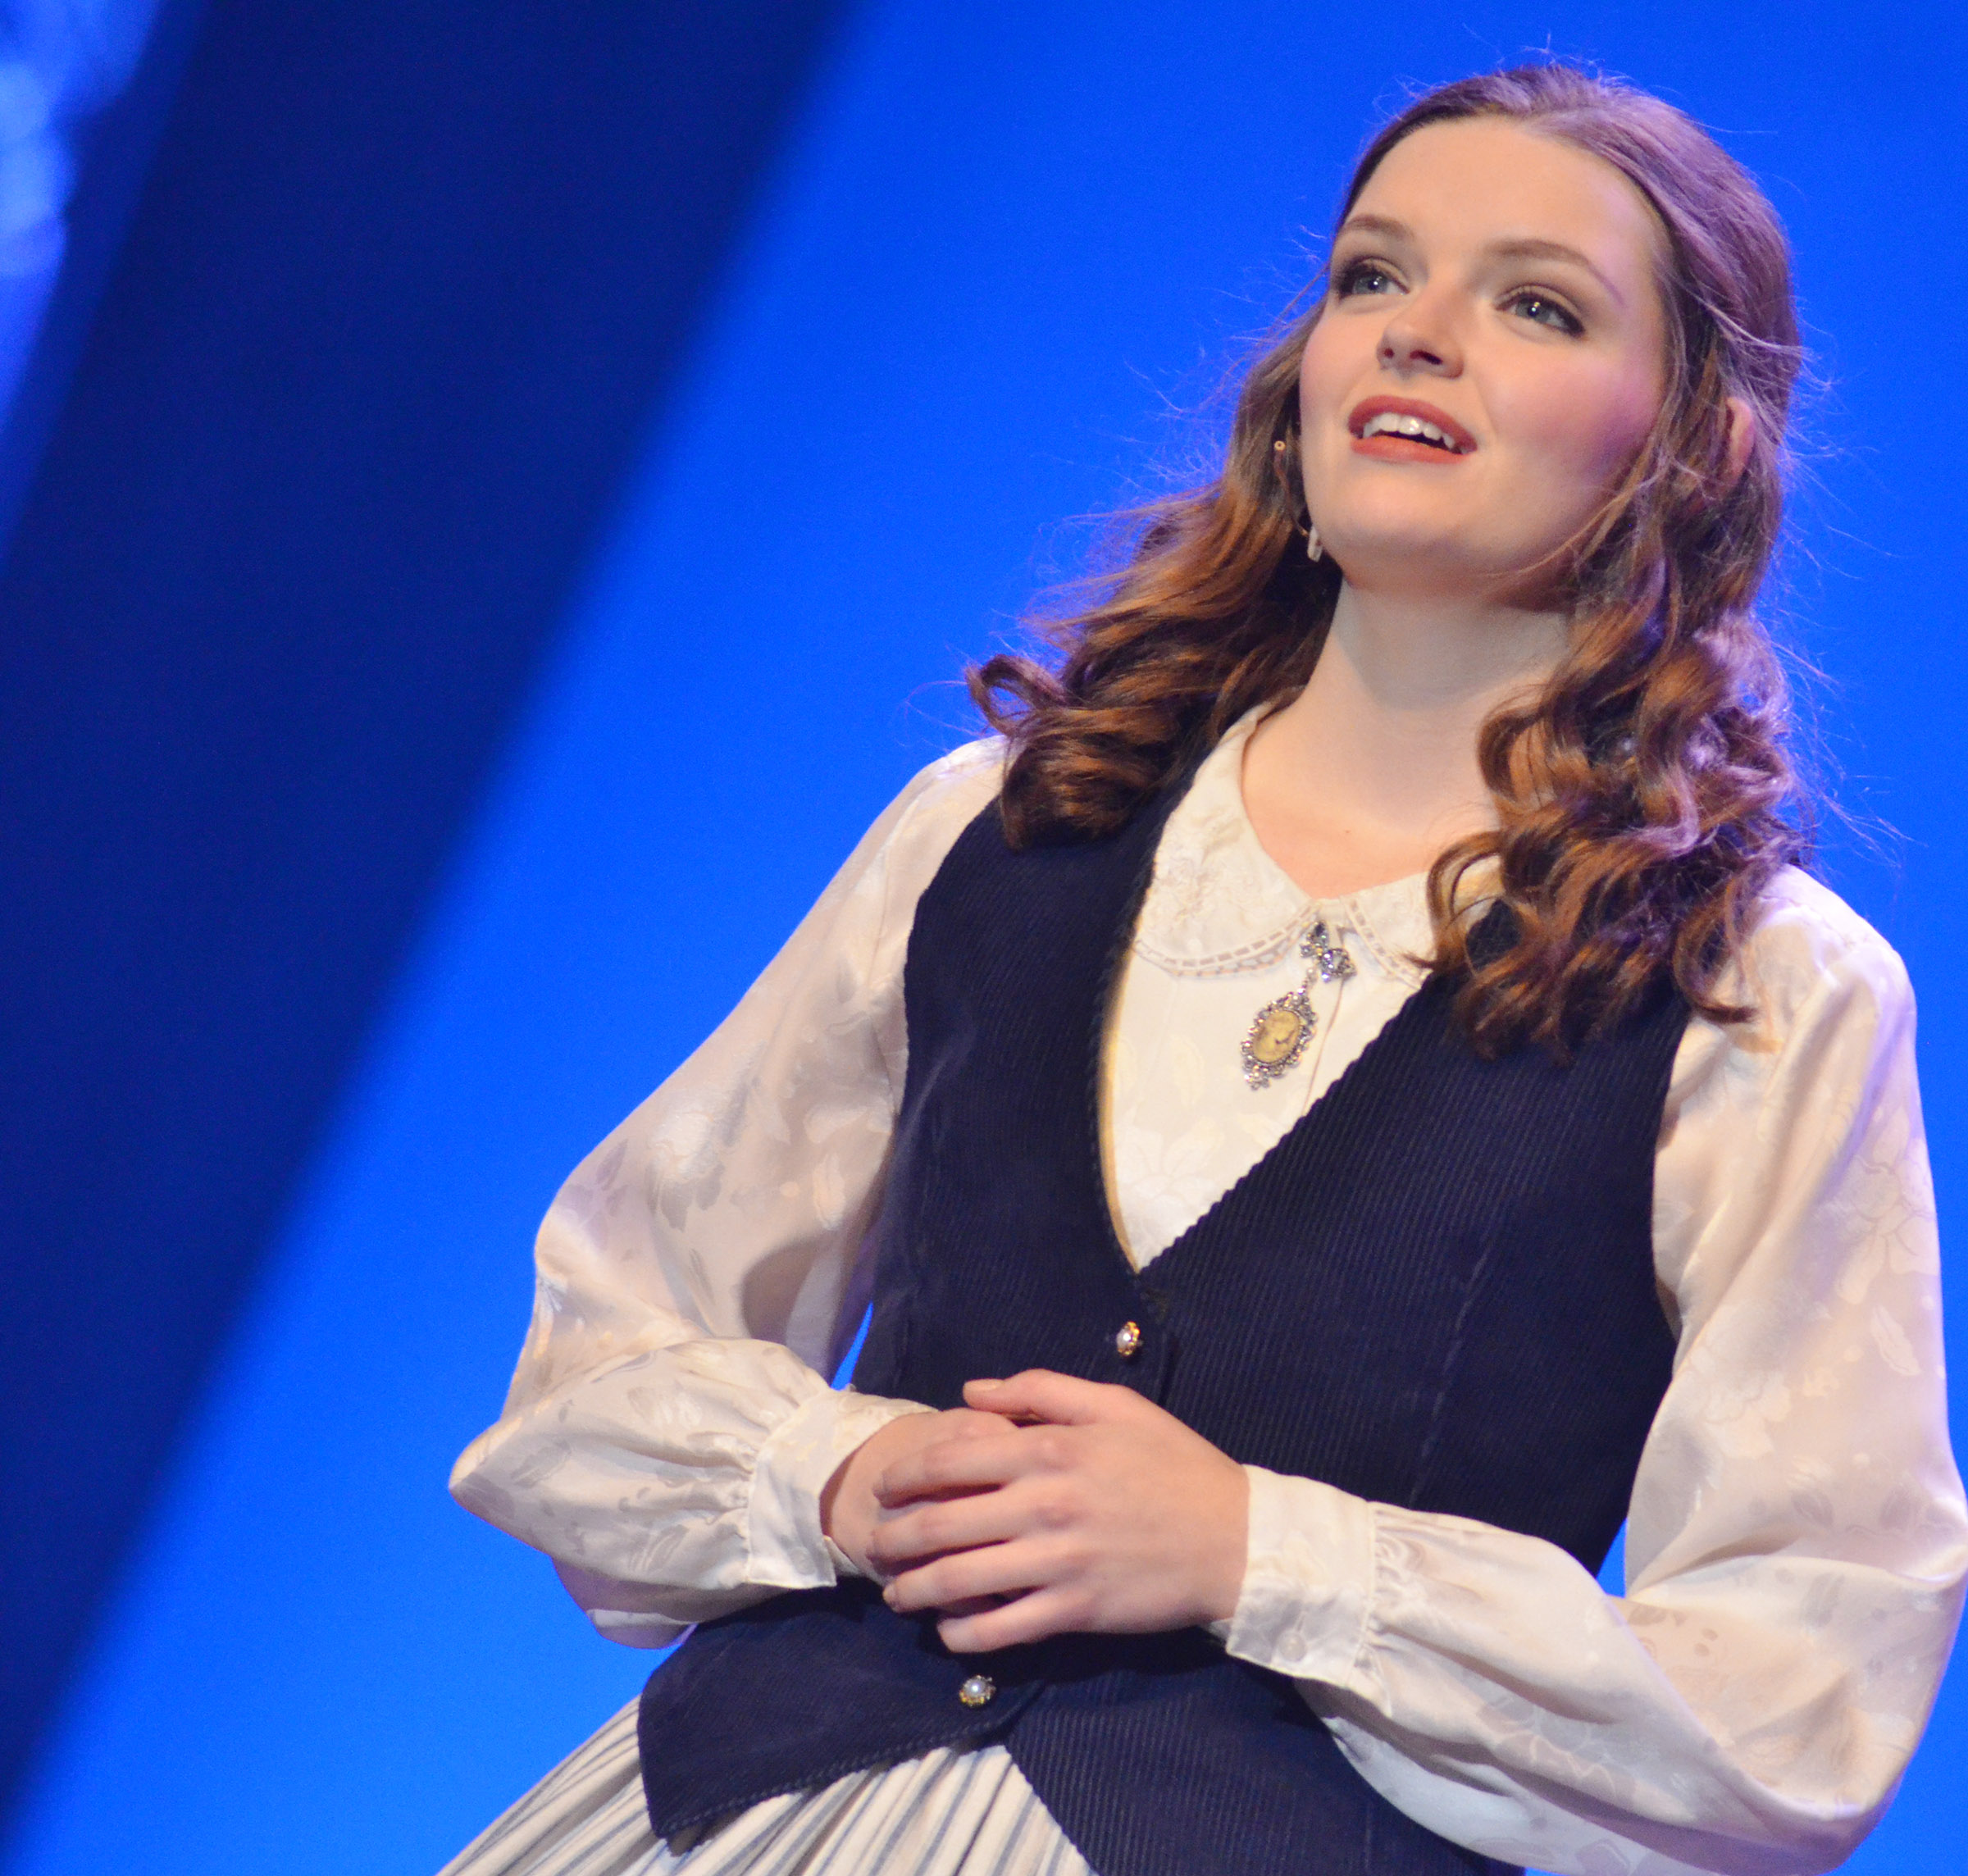 CHS senior Blair Lamb competes in the talent portion of the state DYW program. She was named fourth runner-up.